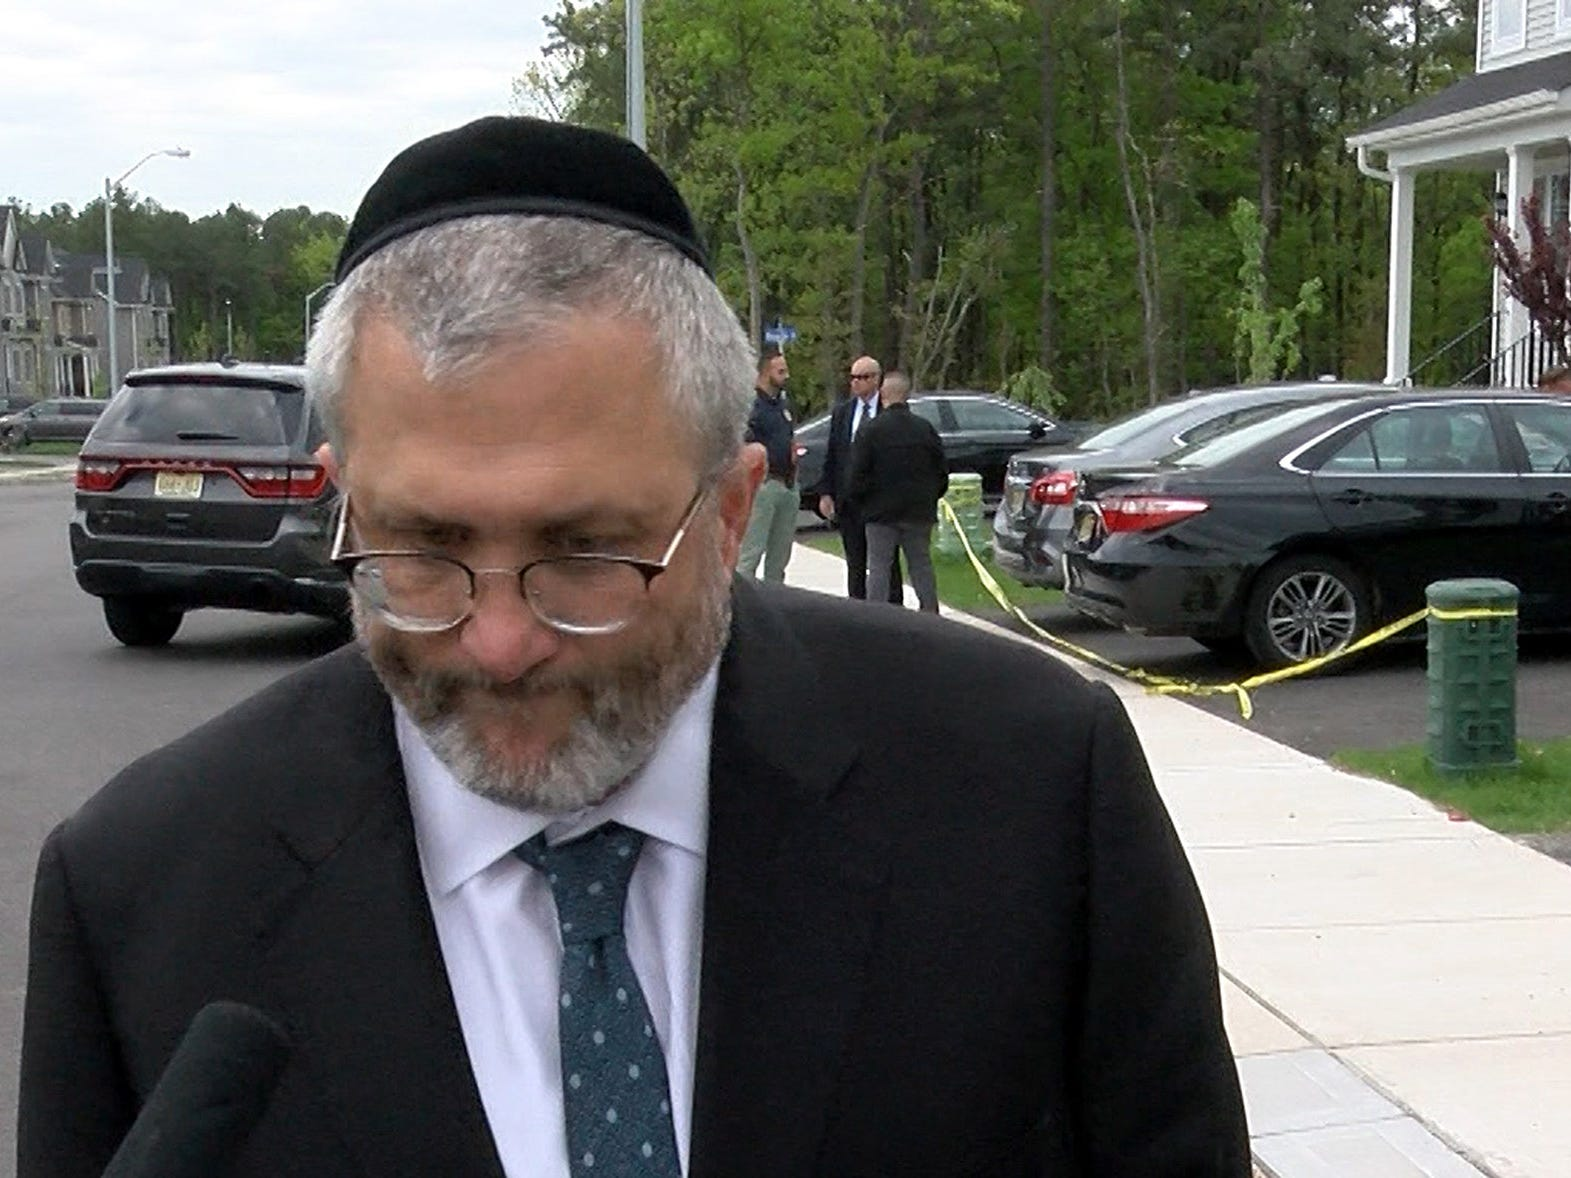 Lakewood Township Committeeman Meir Lichtenstein speaks Monday afternoon, May 6, 2019, outside the home at 18 Lewin Avenue in the township where a child was found unresponsive in a car  and later died at the hospital.